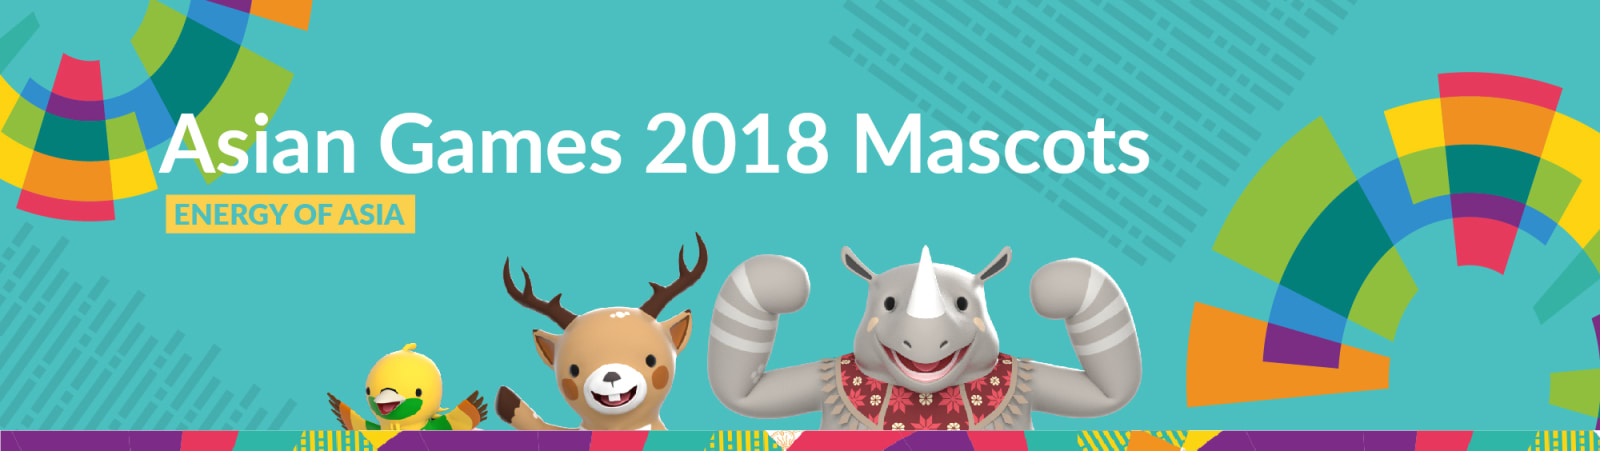 Mascots for Asian Games 2018.